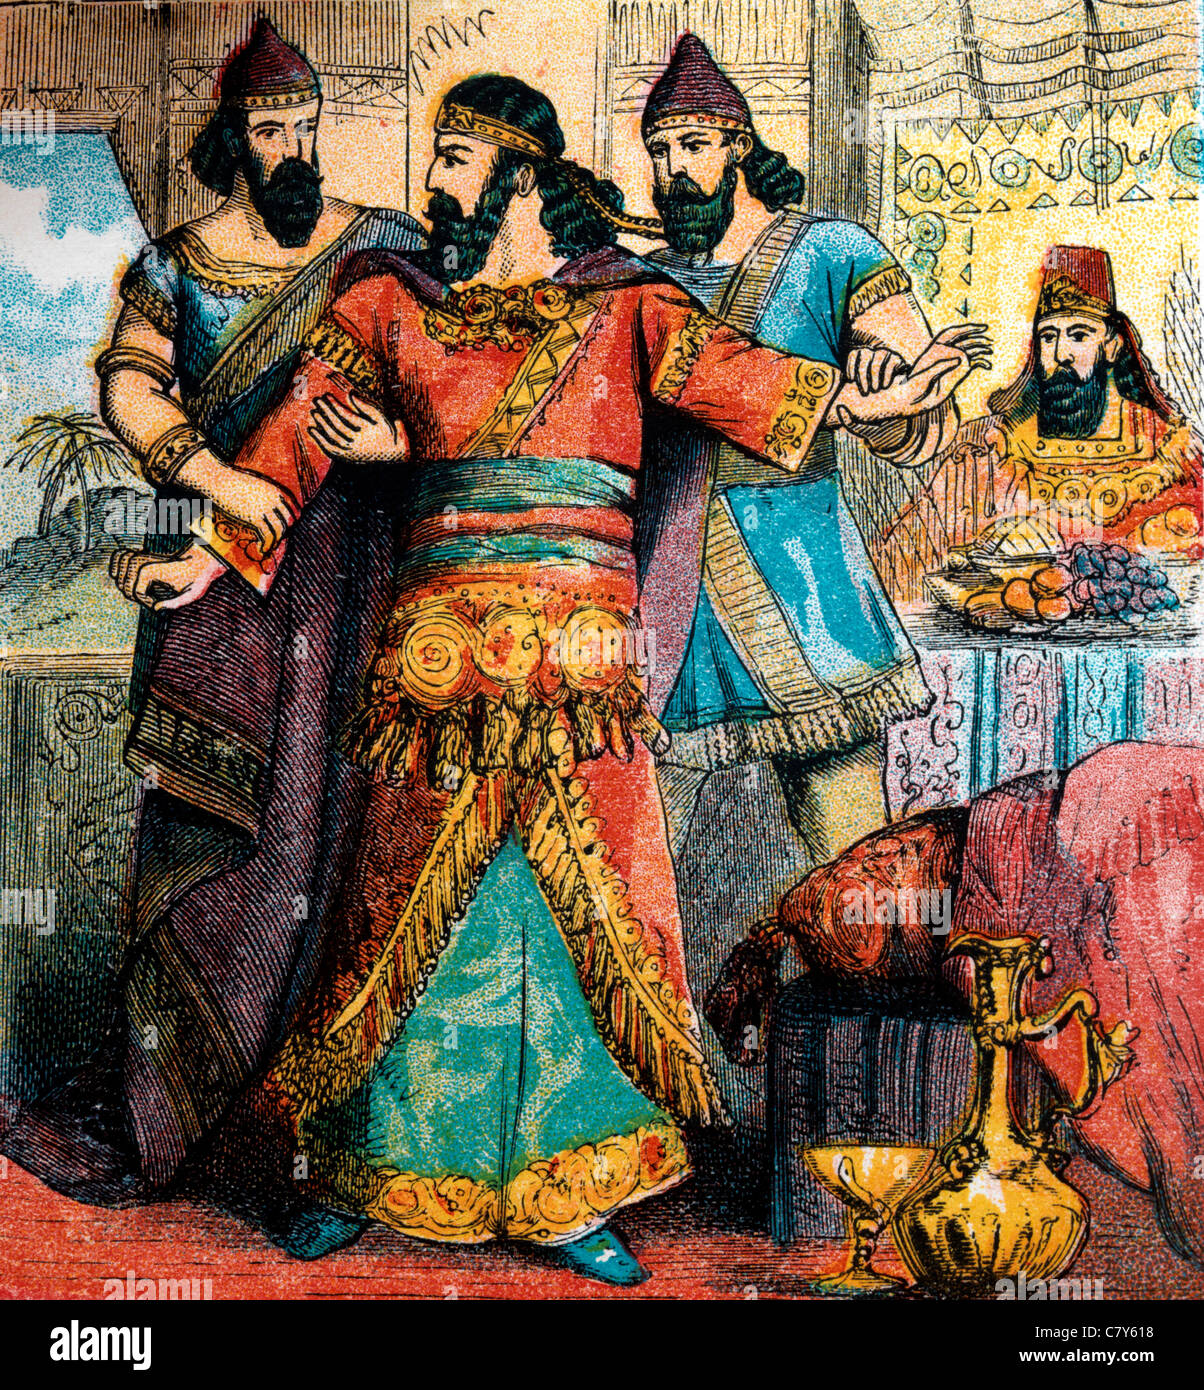 Bible Stories - Illustration Of Haman Standing Up Being Held Pleading For His Life To Esther At The Banquet Esther - Stock Image